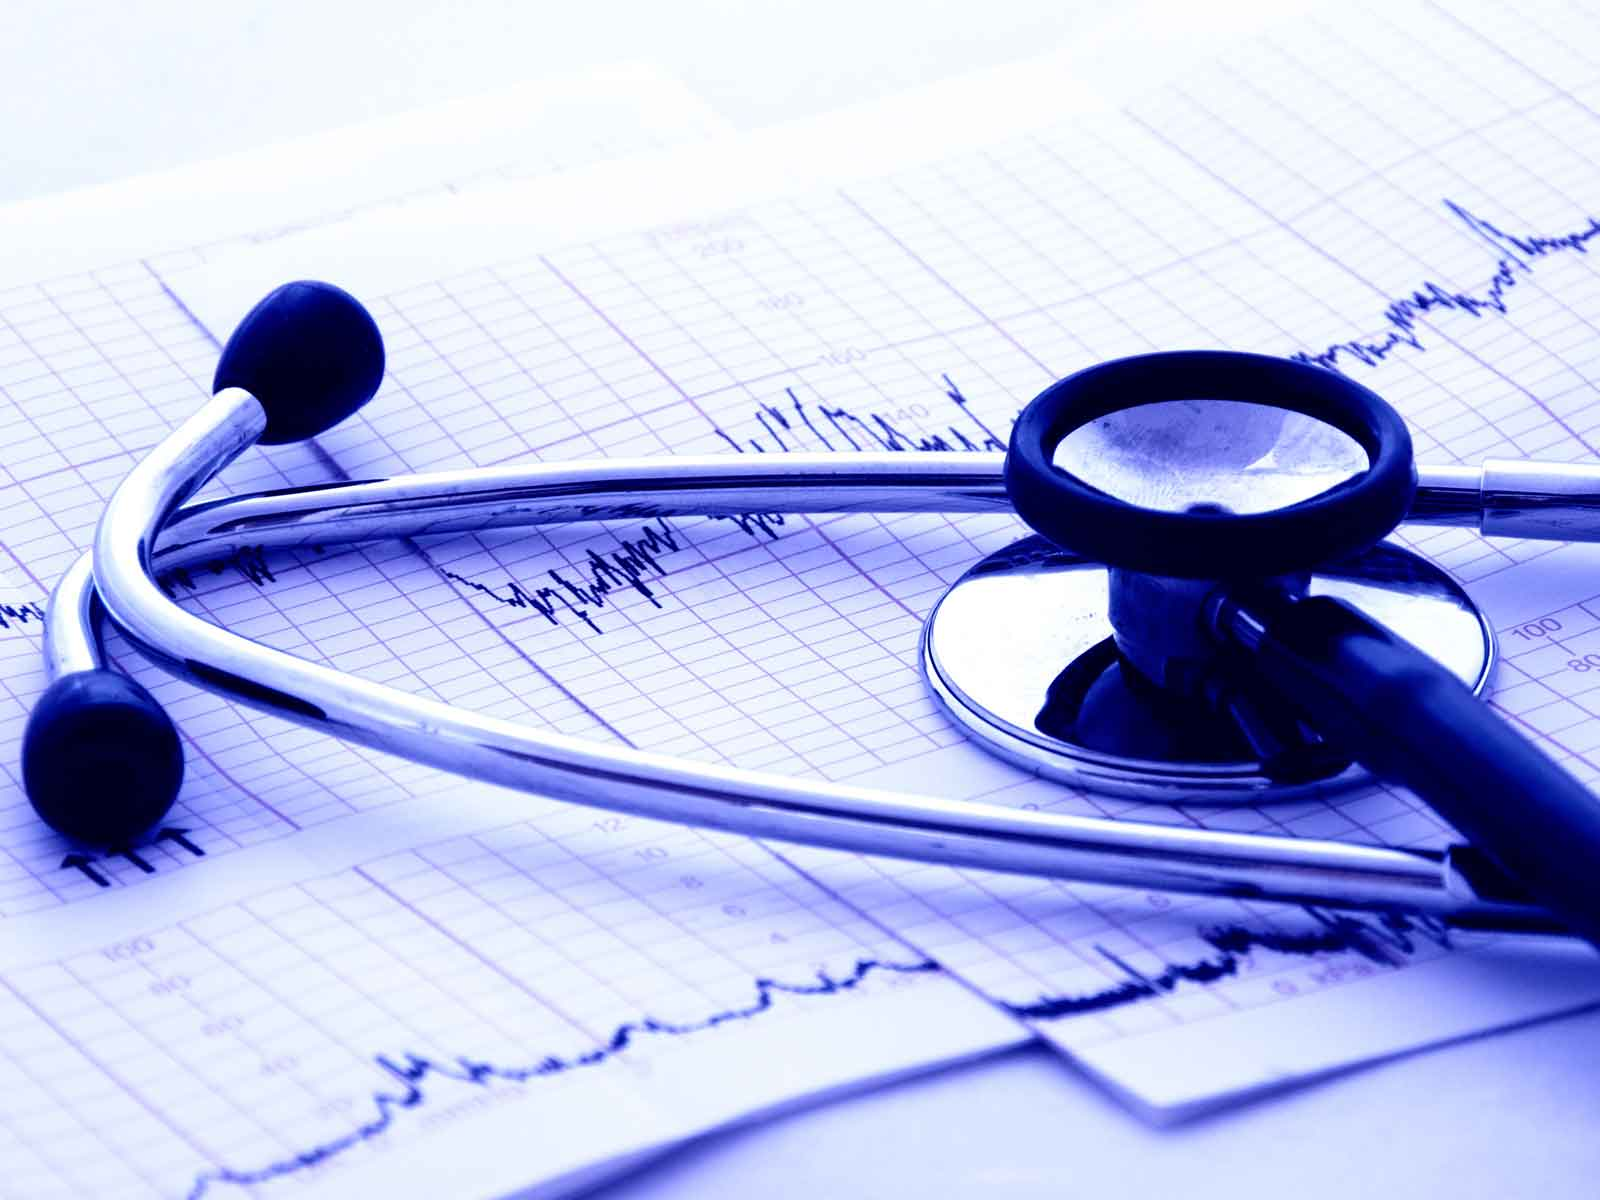 Medical Doctor Wallpapers HD - Wallpaper CaveDoctor Stethoscope Images Hd